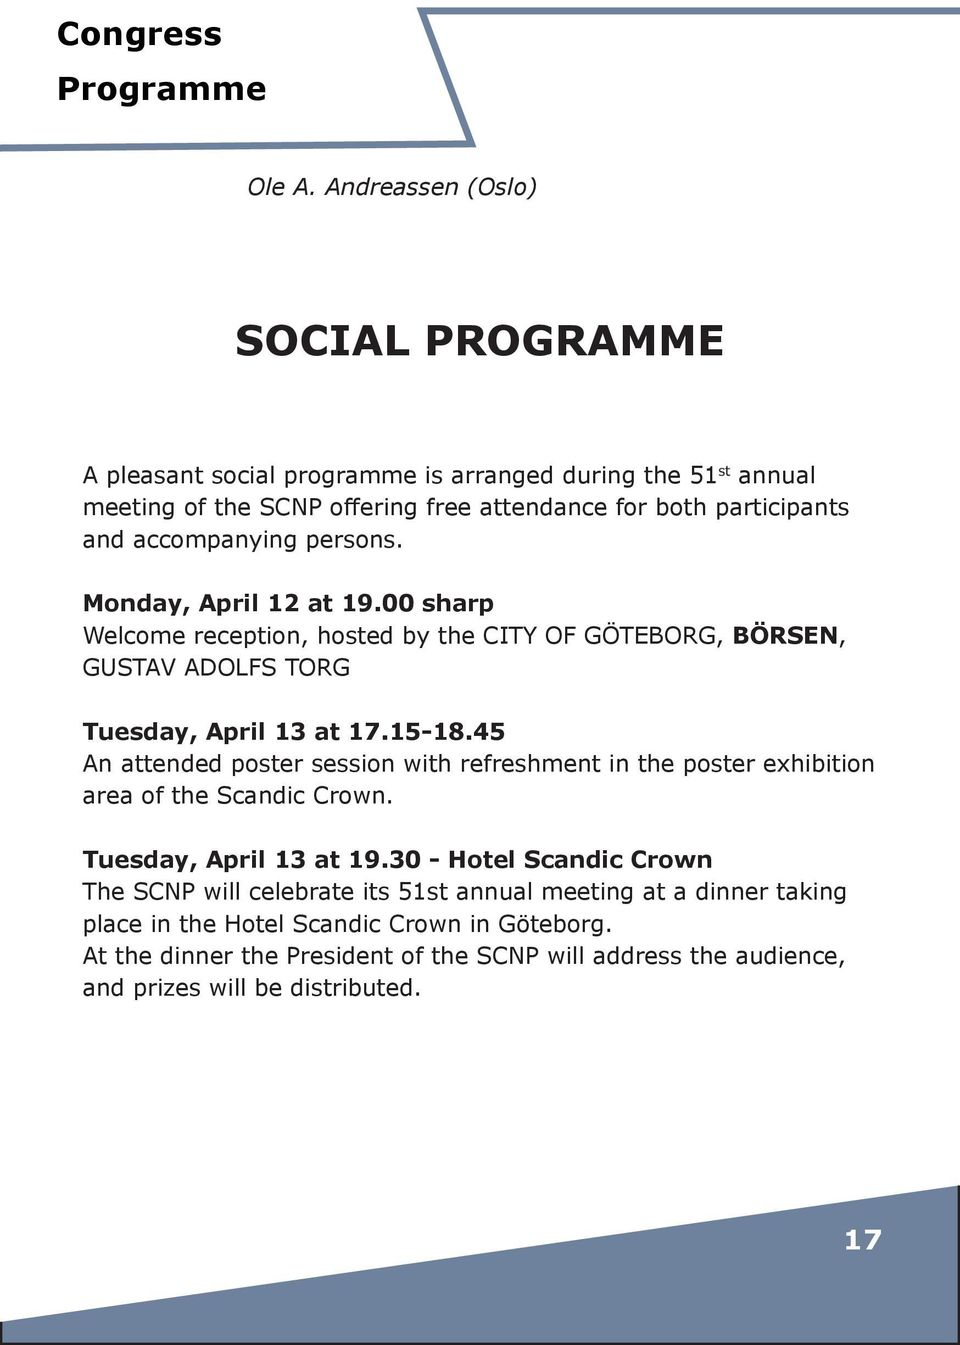 accompanying persons. Monday, April 12 at 19.00 sharp Welcome reception, hosted by the CITY OF GÖTEBORG, BÖRSEN, GUSTAV ADOLFS TORG Tuesday, April 13 at 17.15-18.